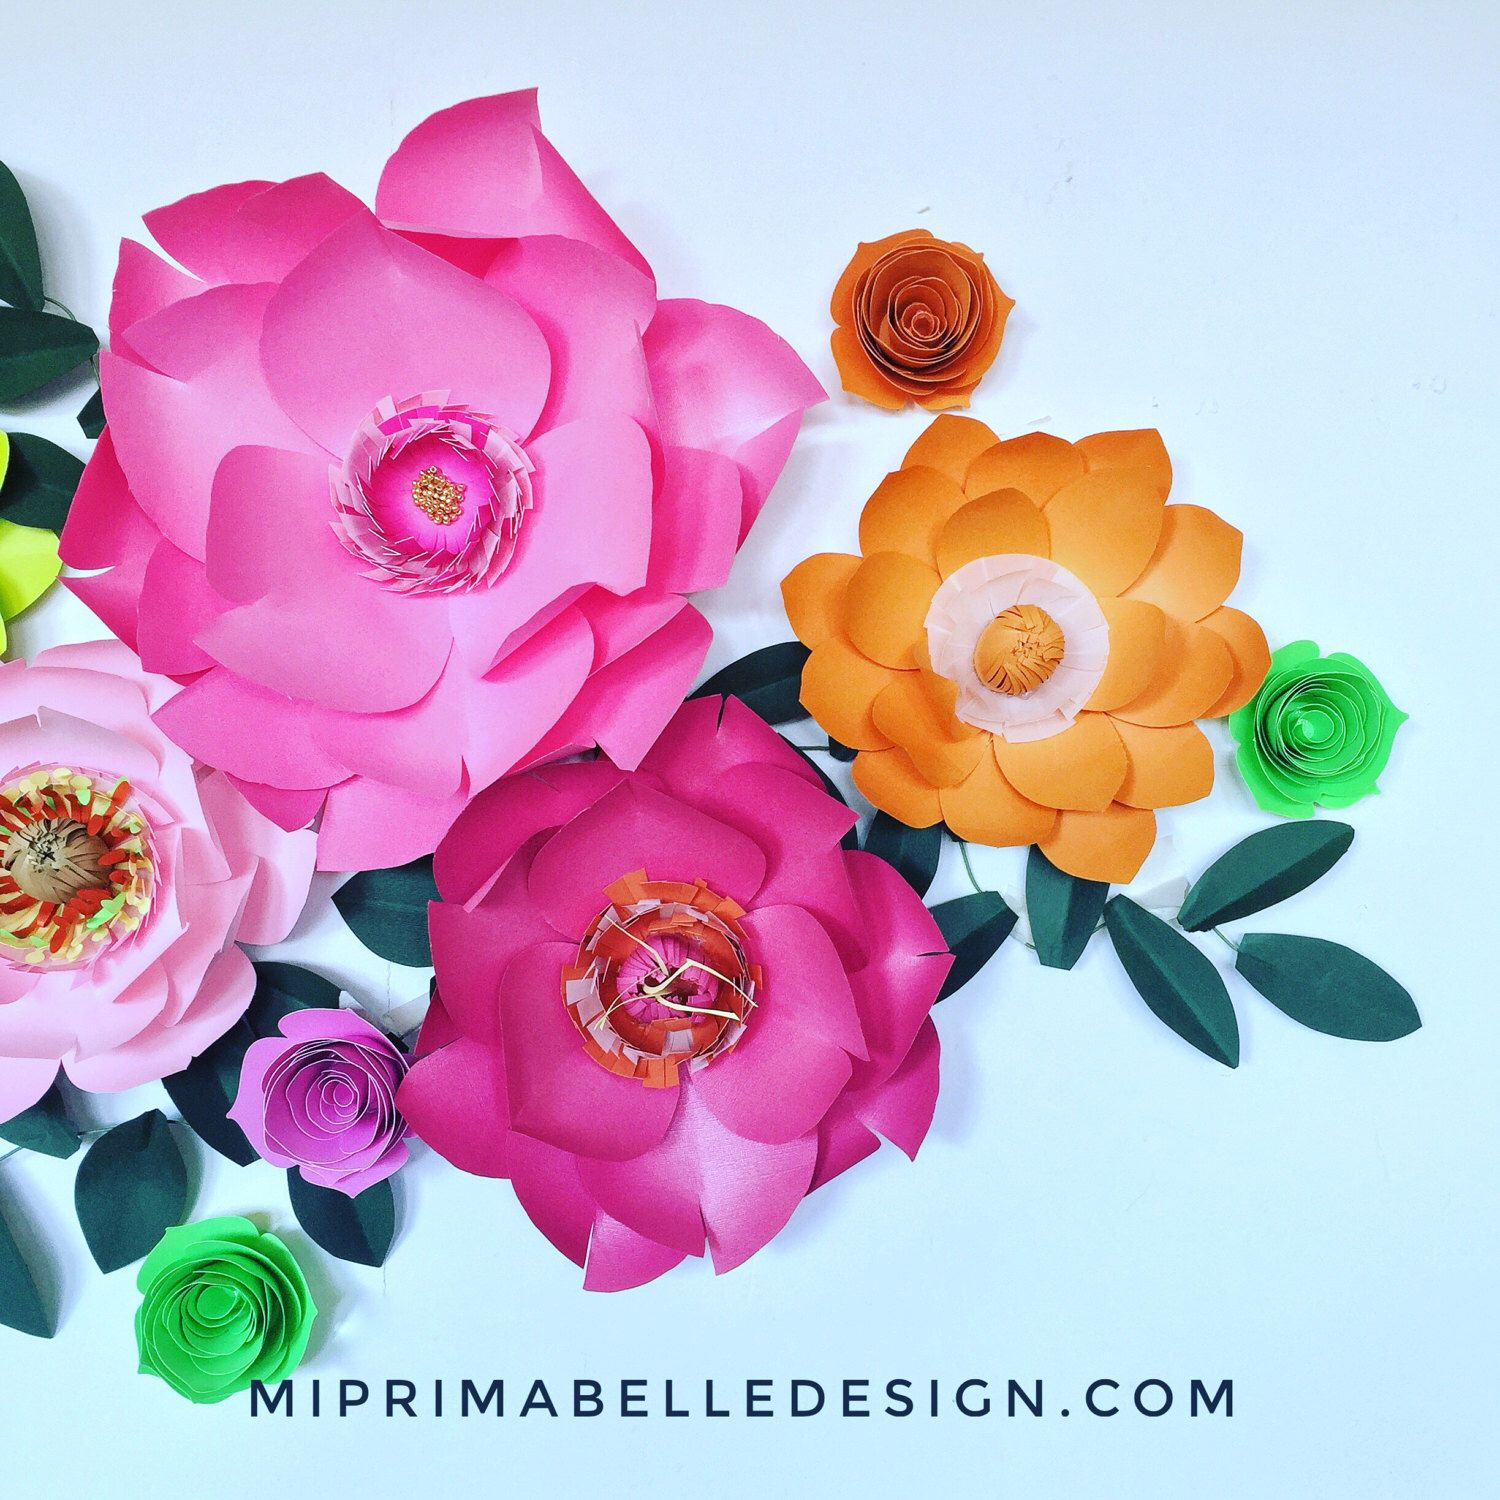 Paper Flowers For Home Or Event Backdrop Decor A Personal